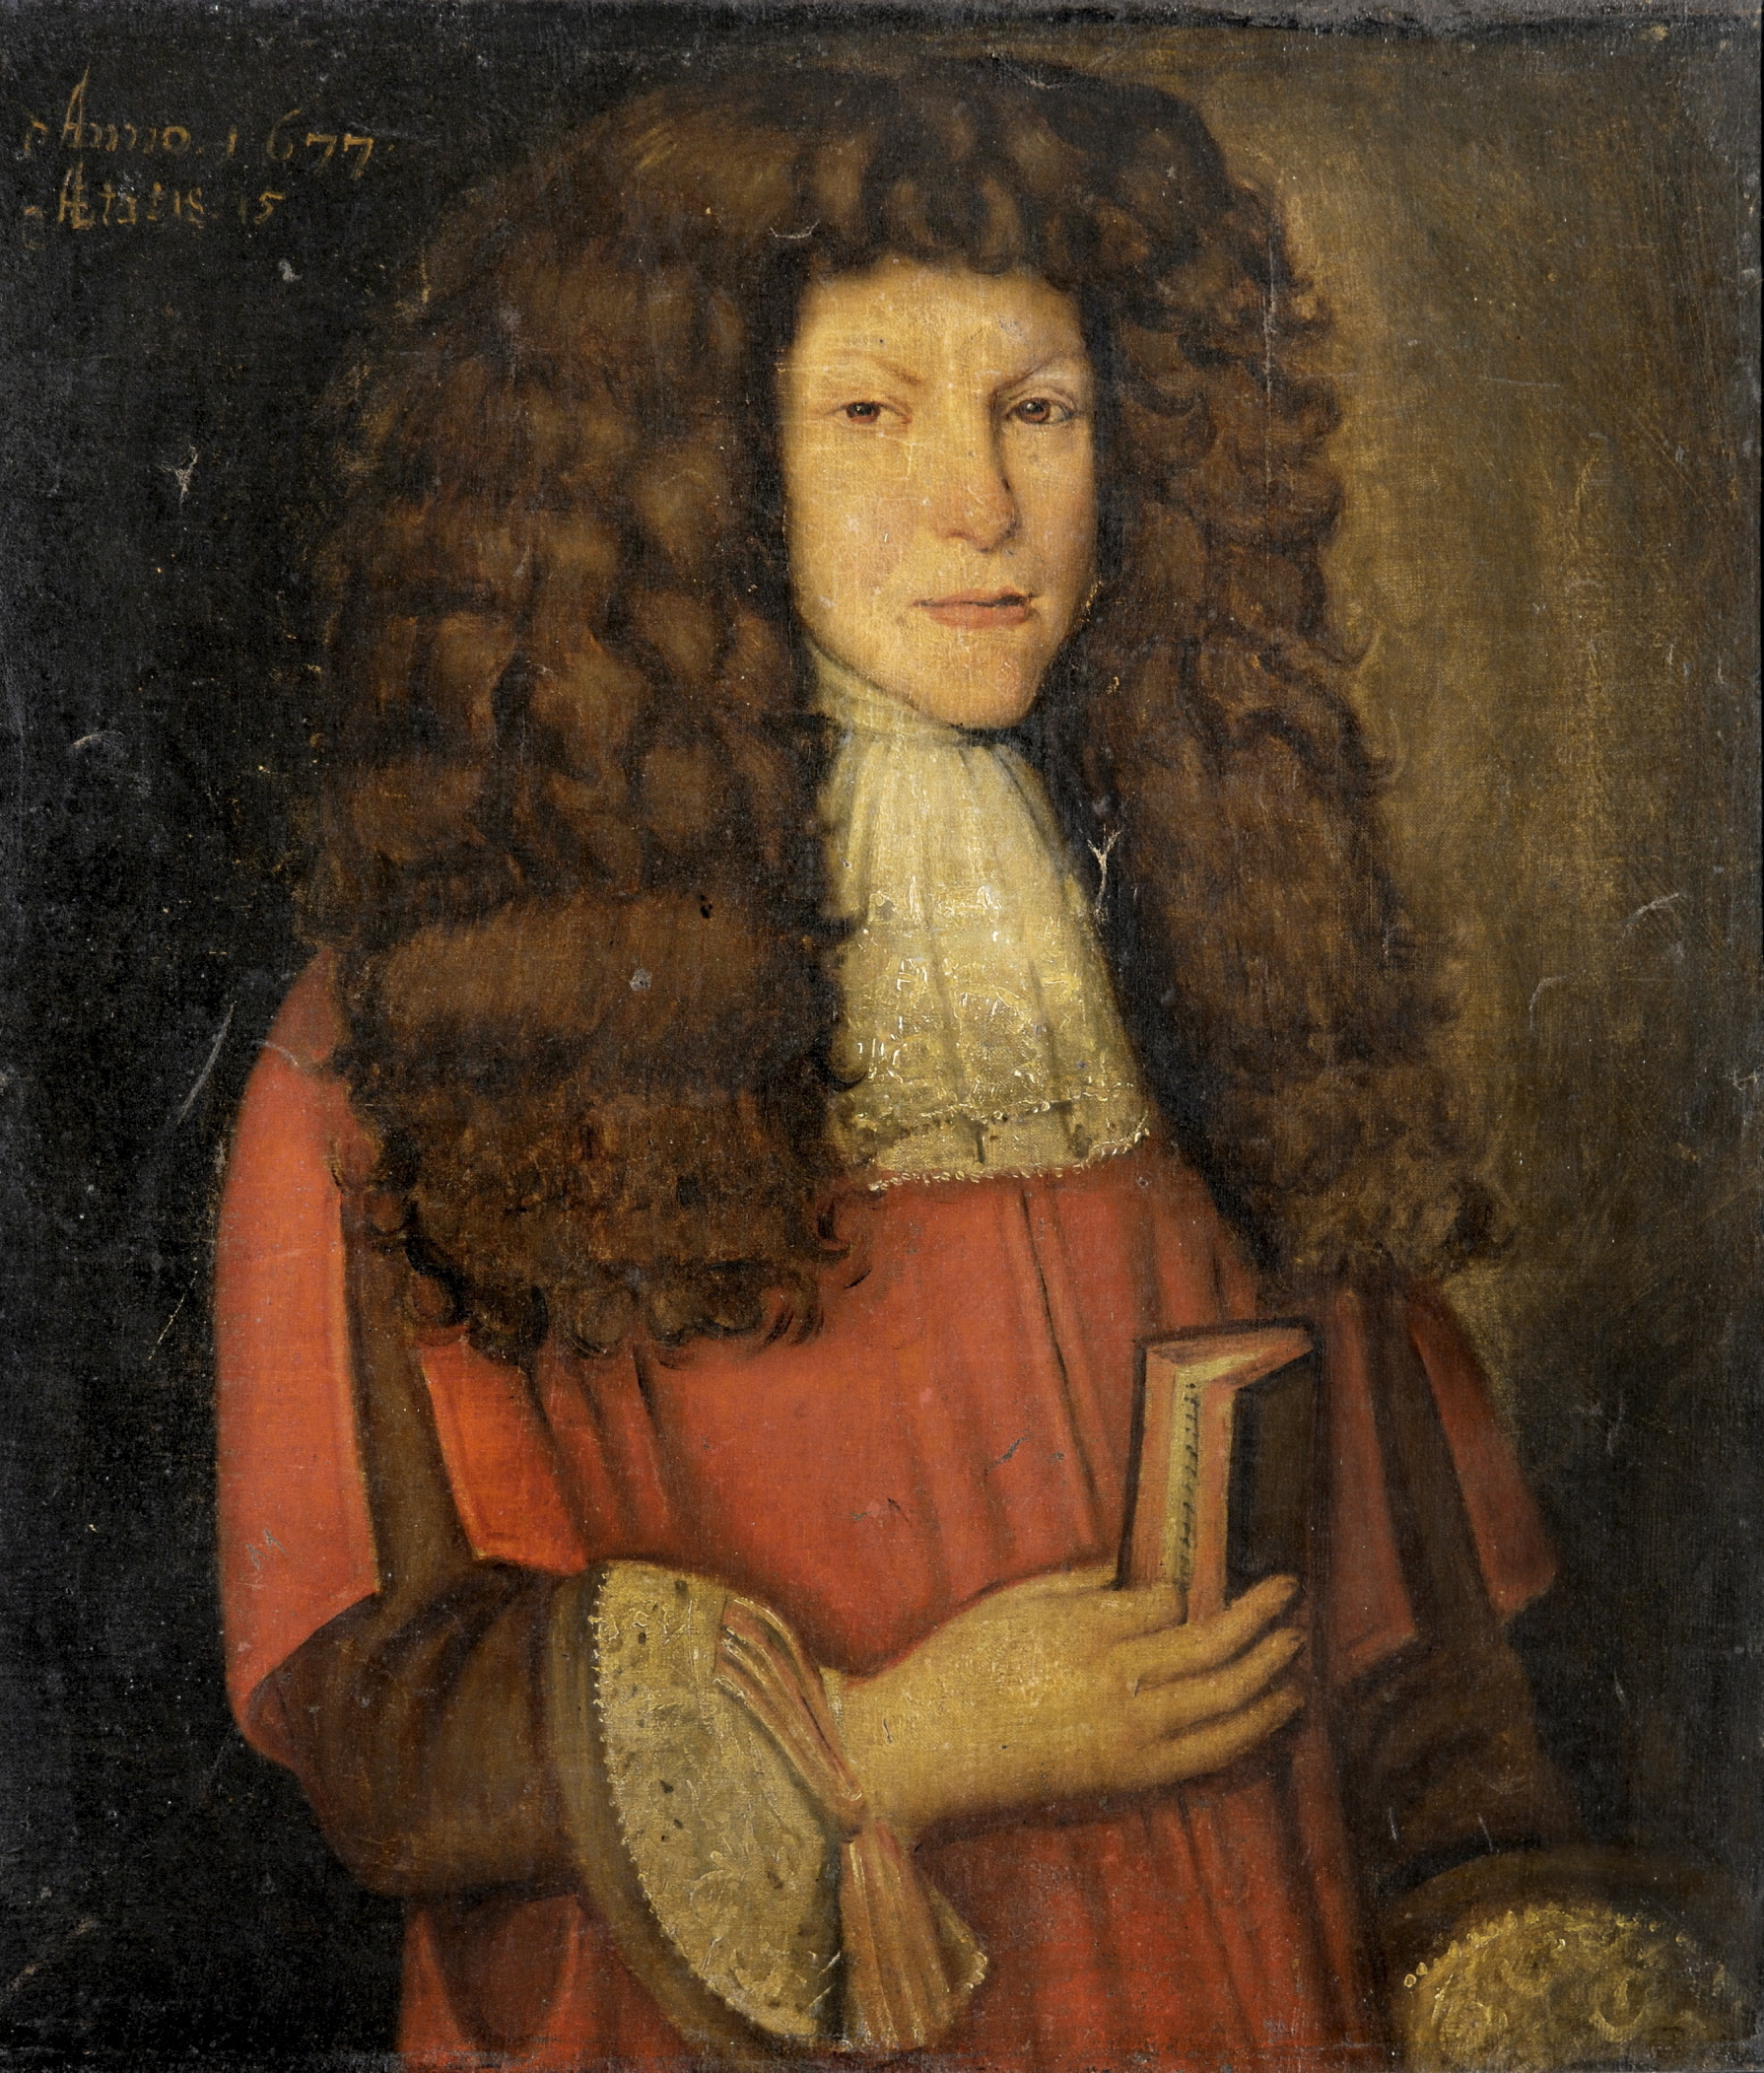 a late 17th century student.